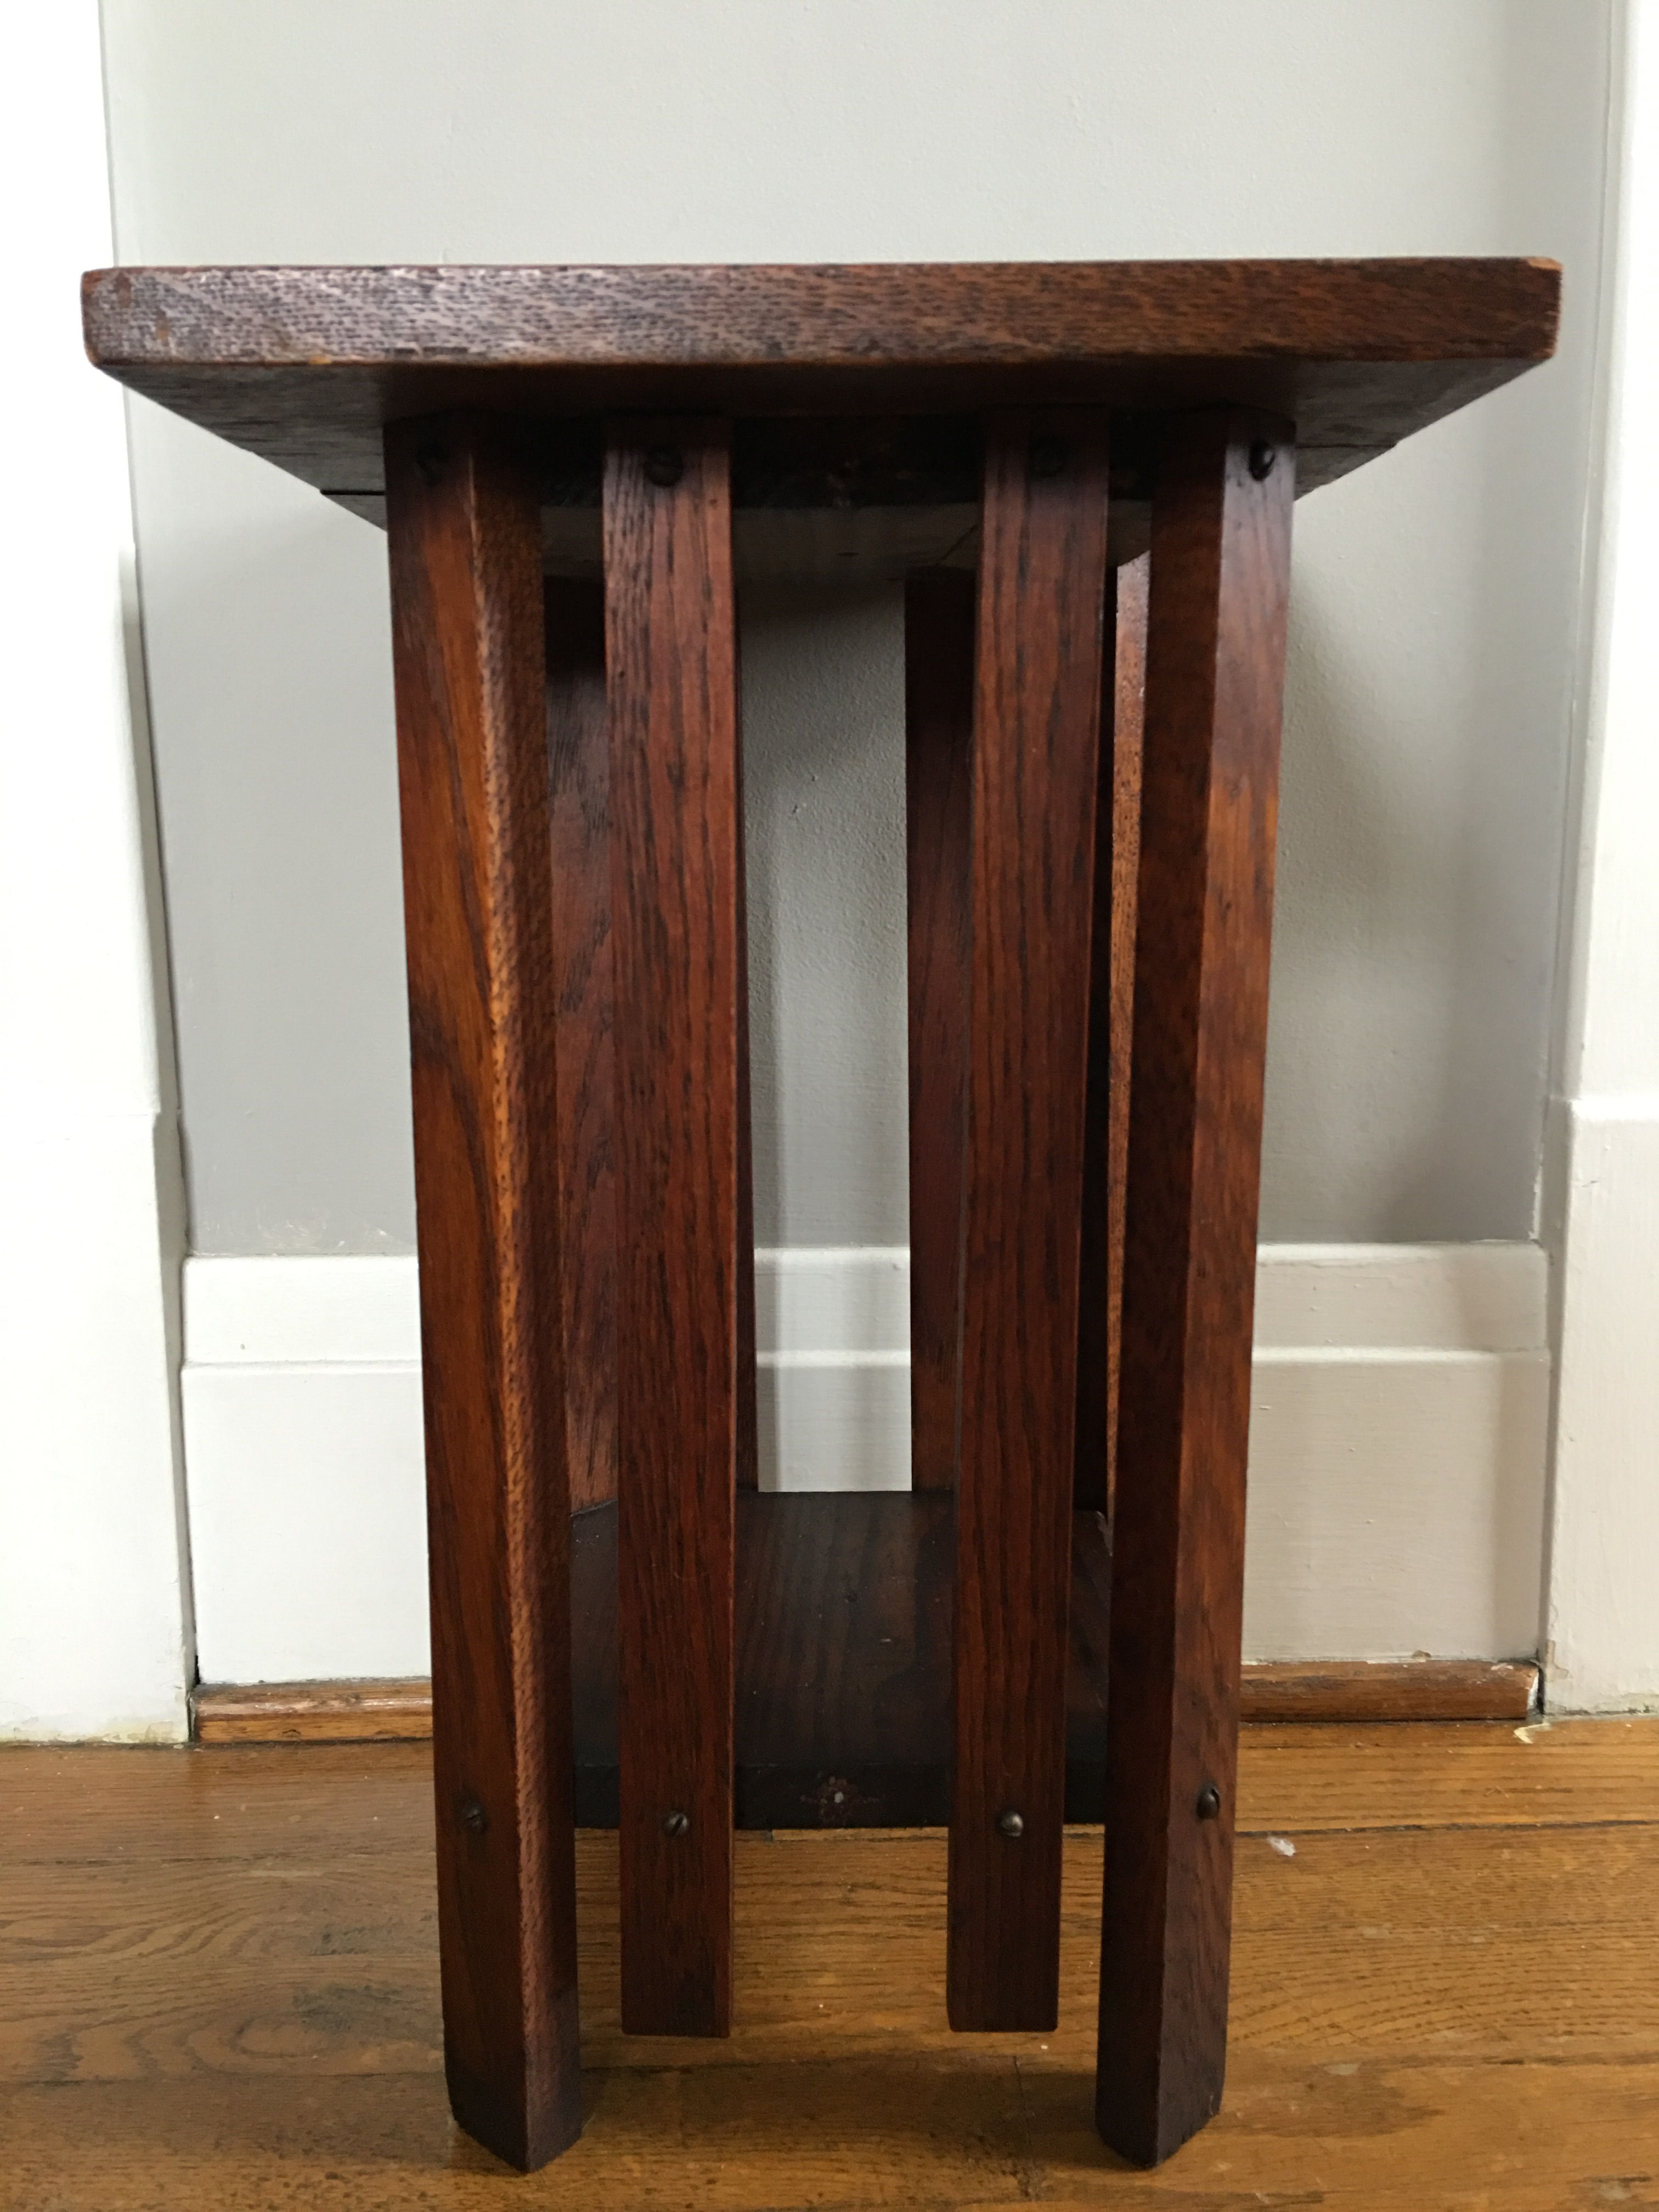 Antique arts and crafts furniture - Image Of Antique Arts Crafts Mission Oak Plant Stand Side Table